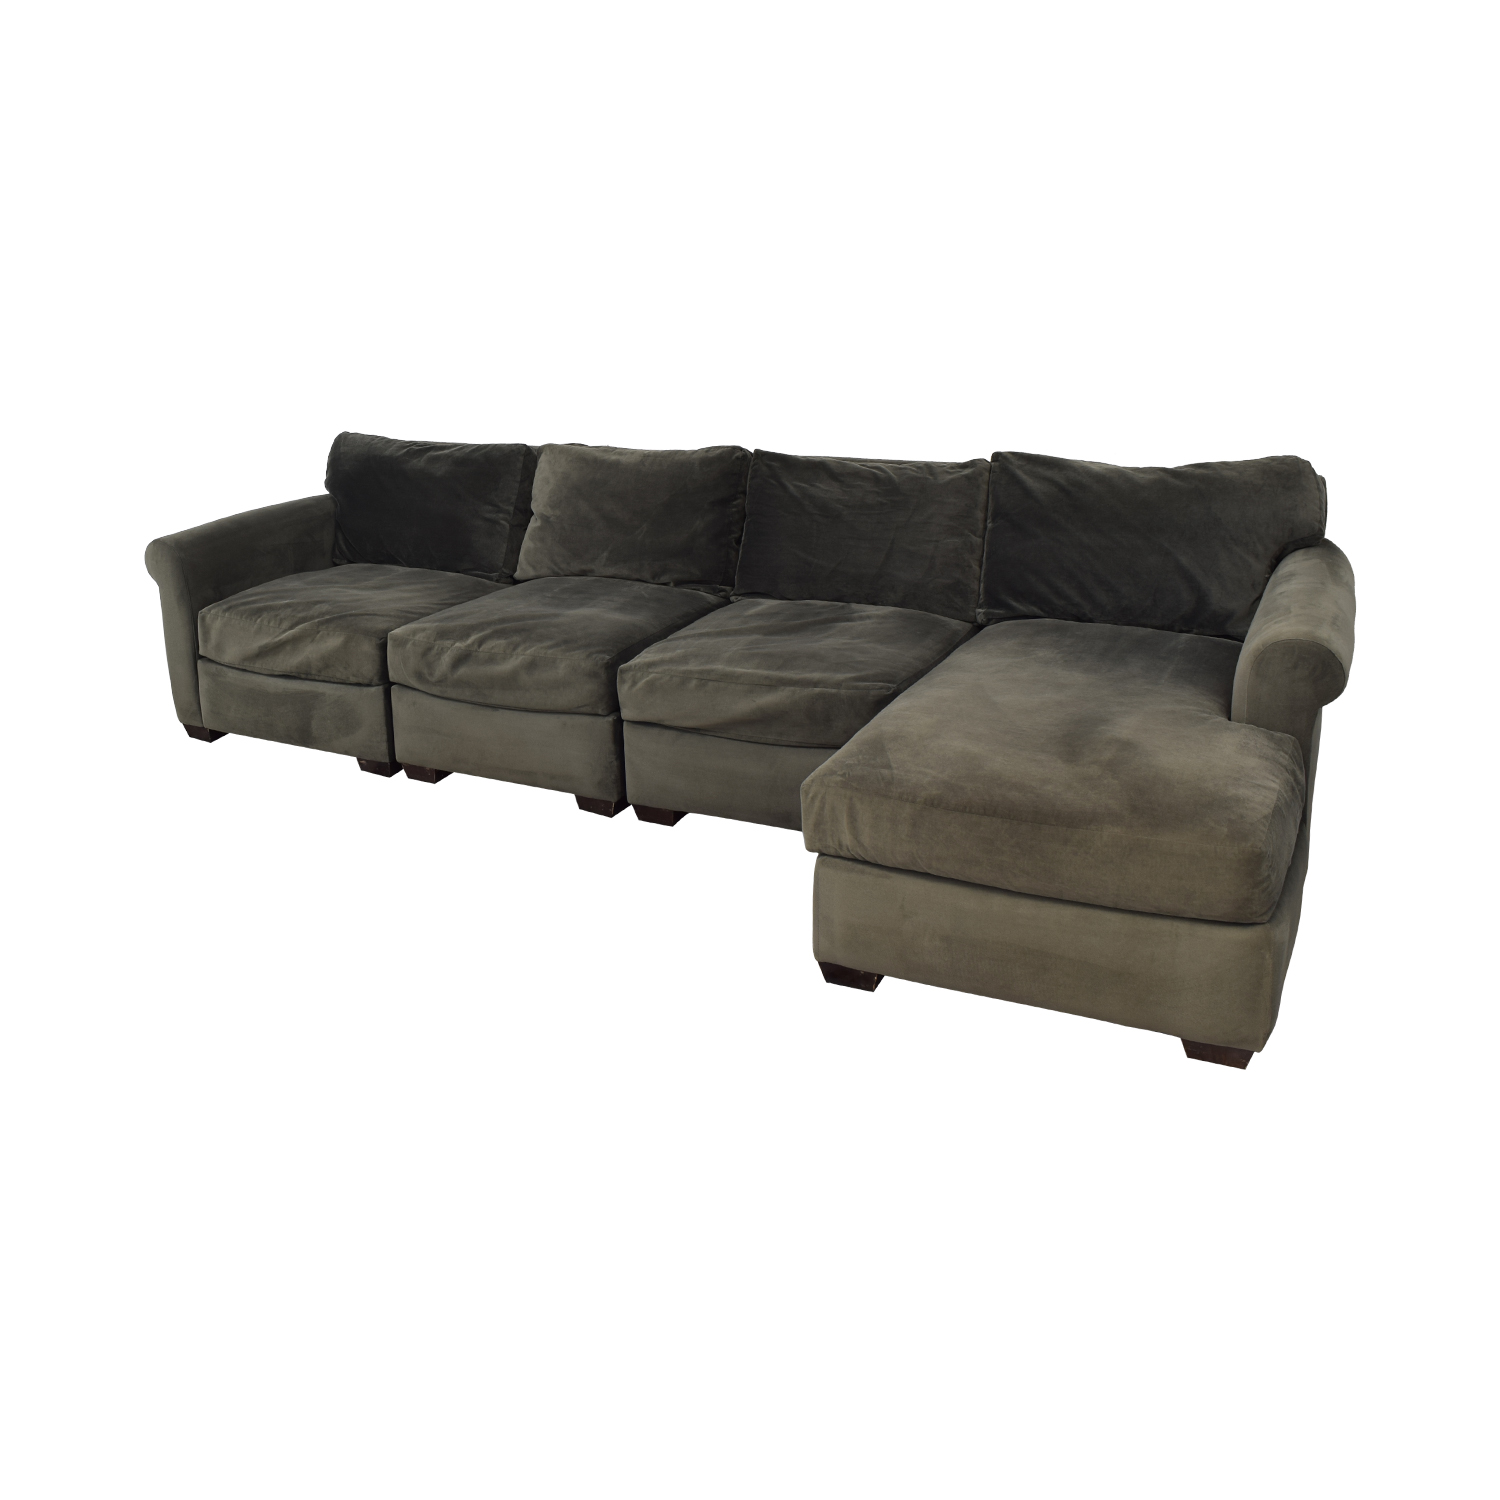 shop Macy's Chaise Sectional Sofa Macy's Sectionals